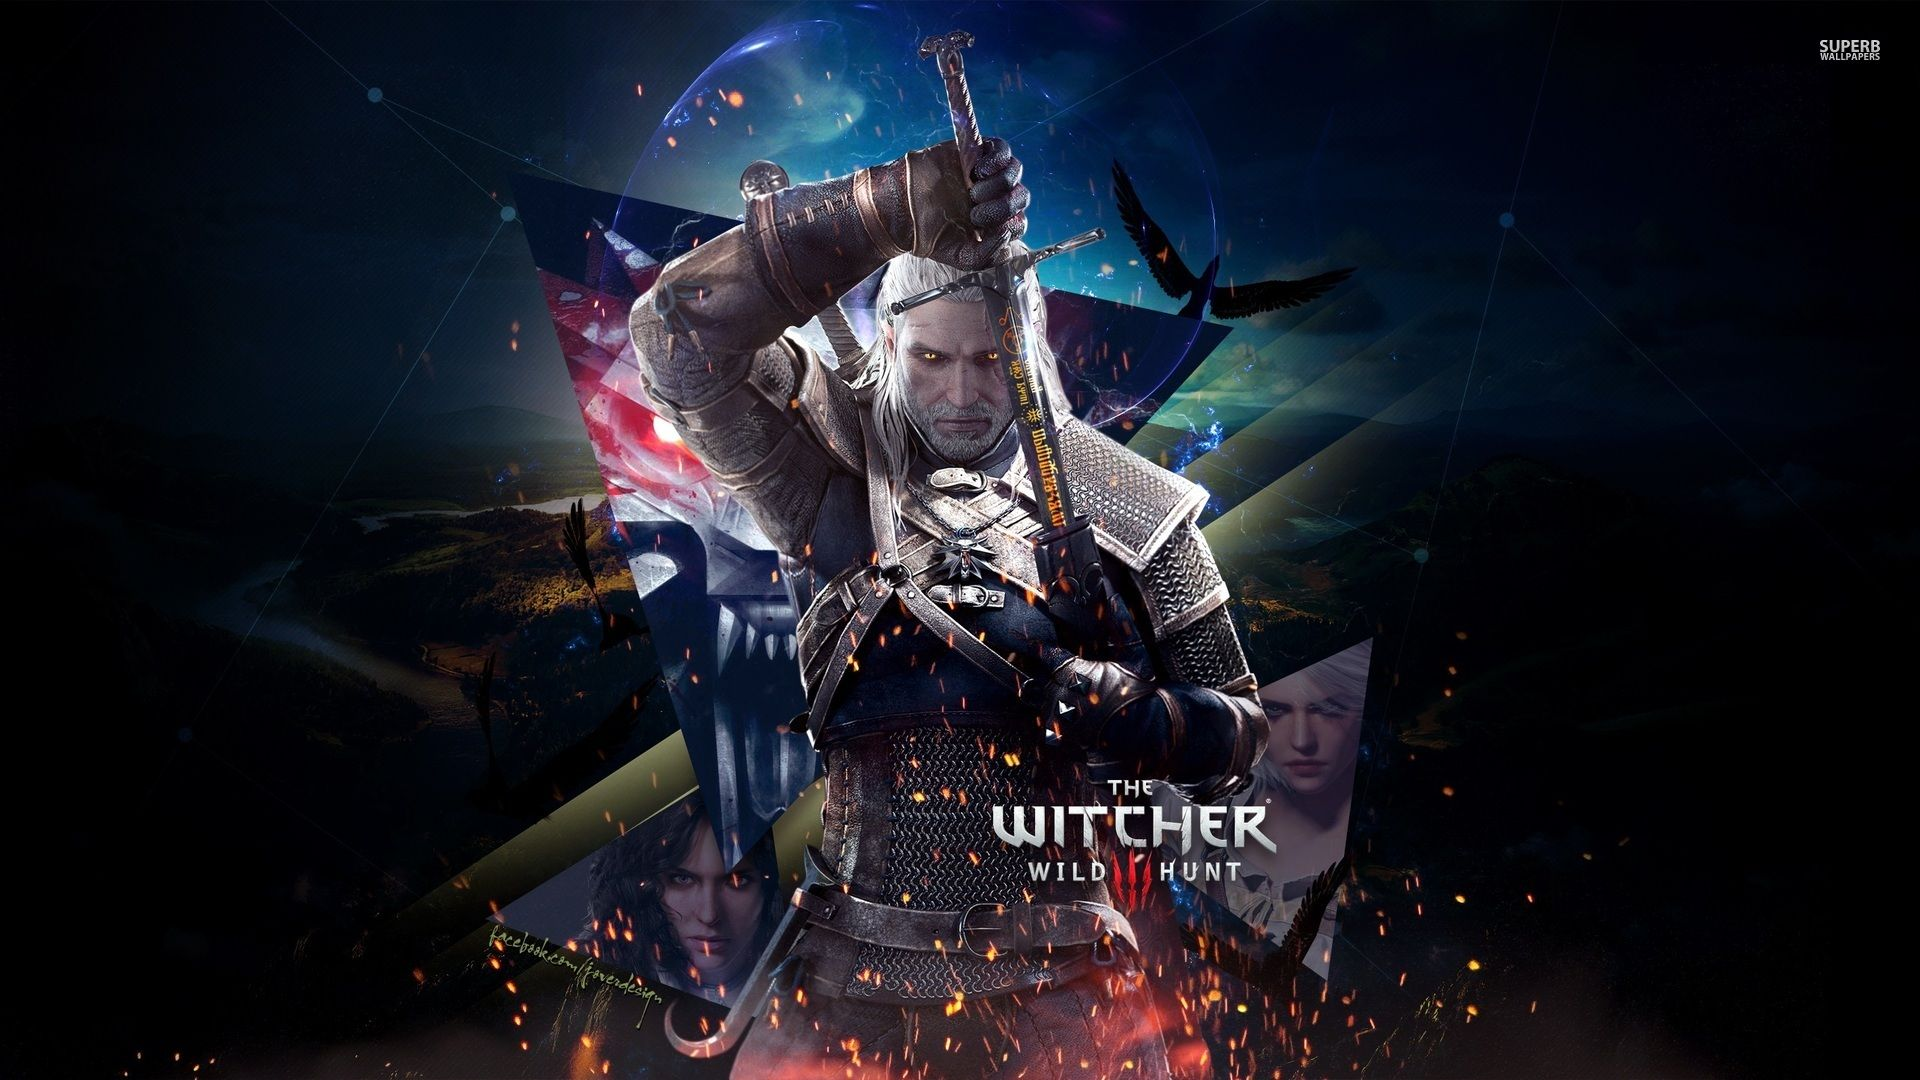 The Witcher, Nice Wallpaper